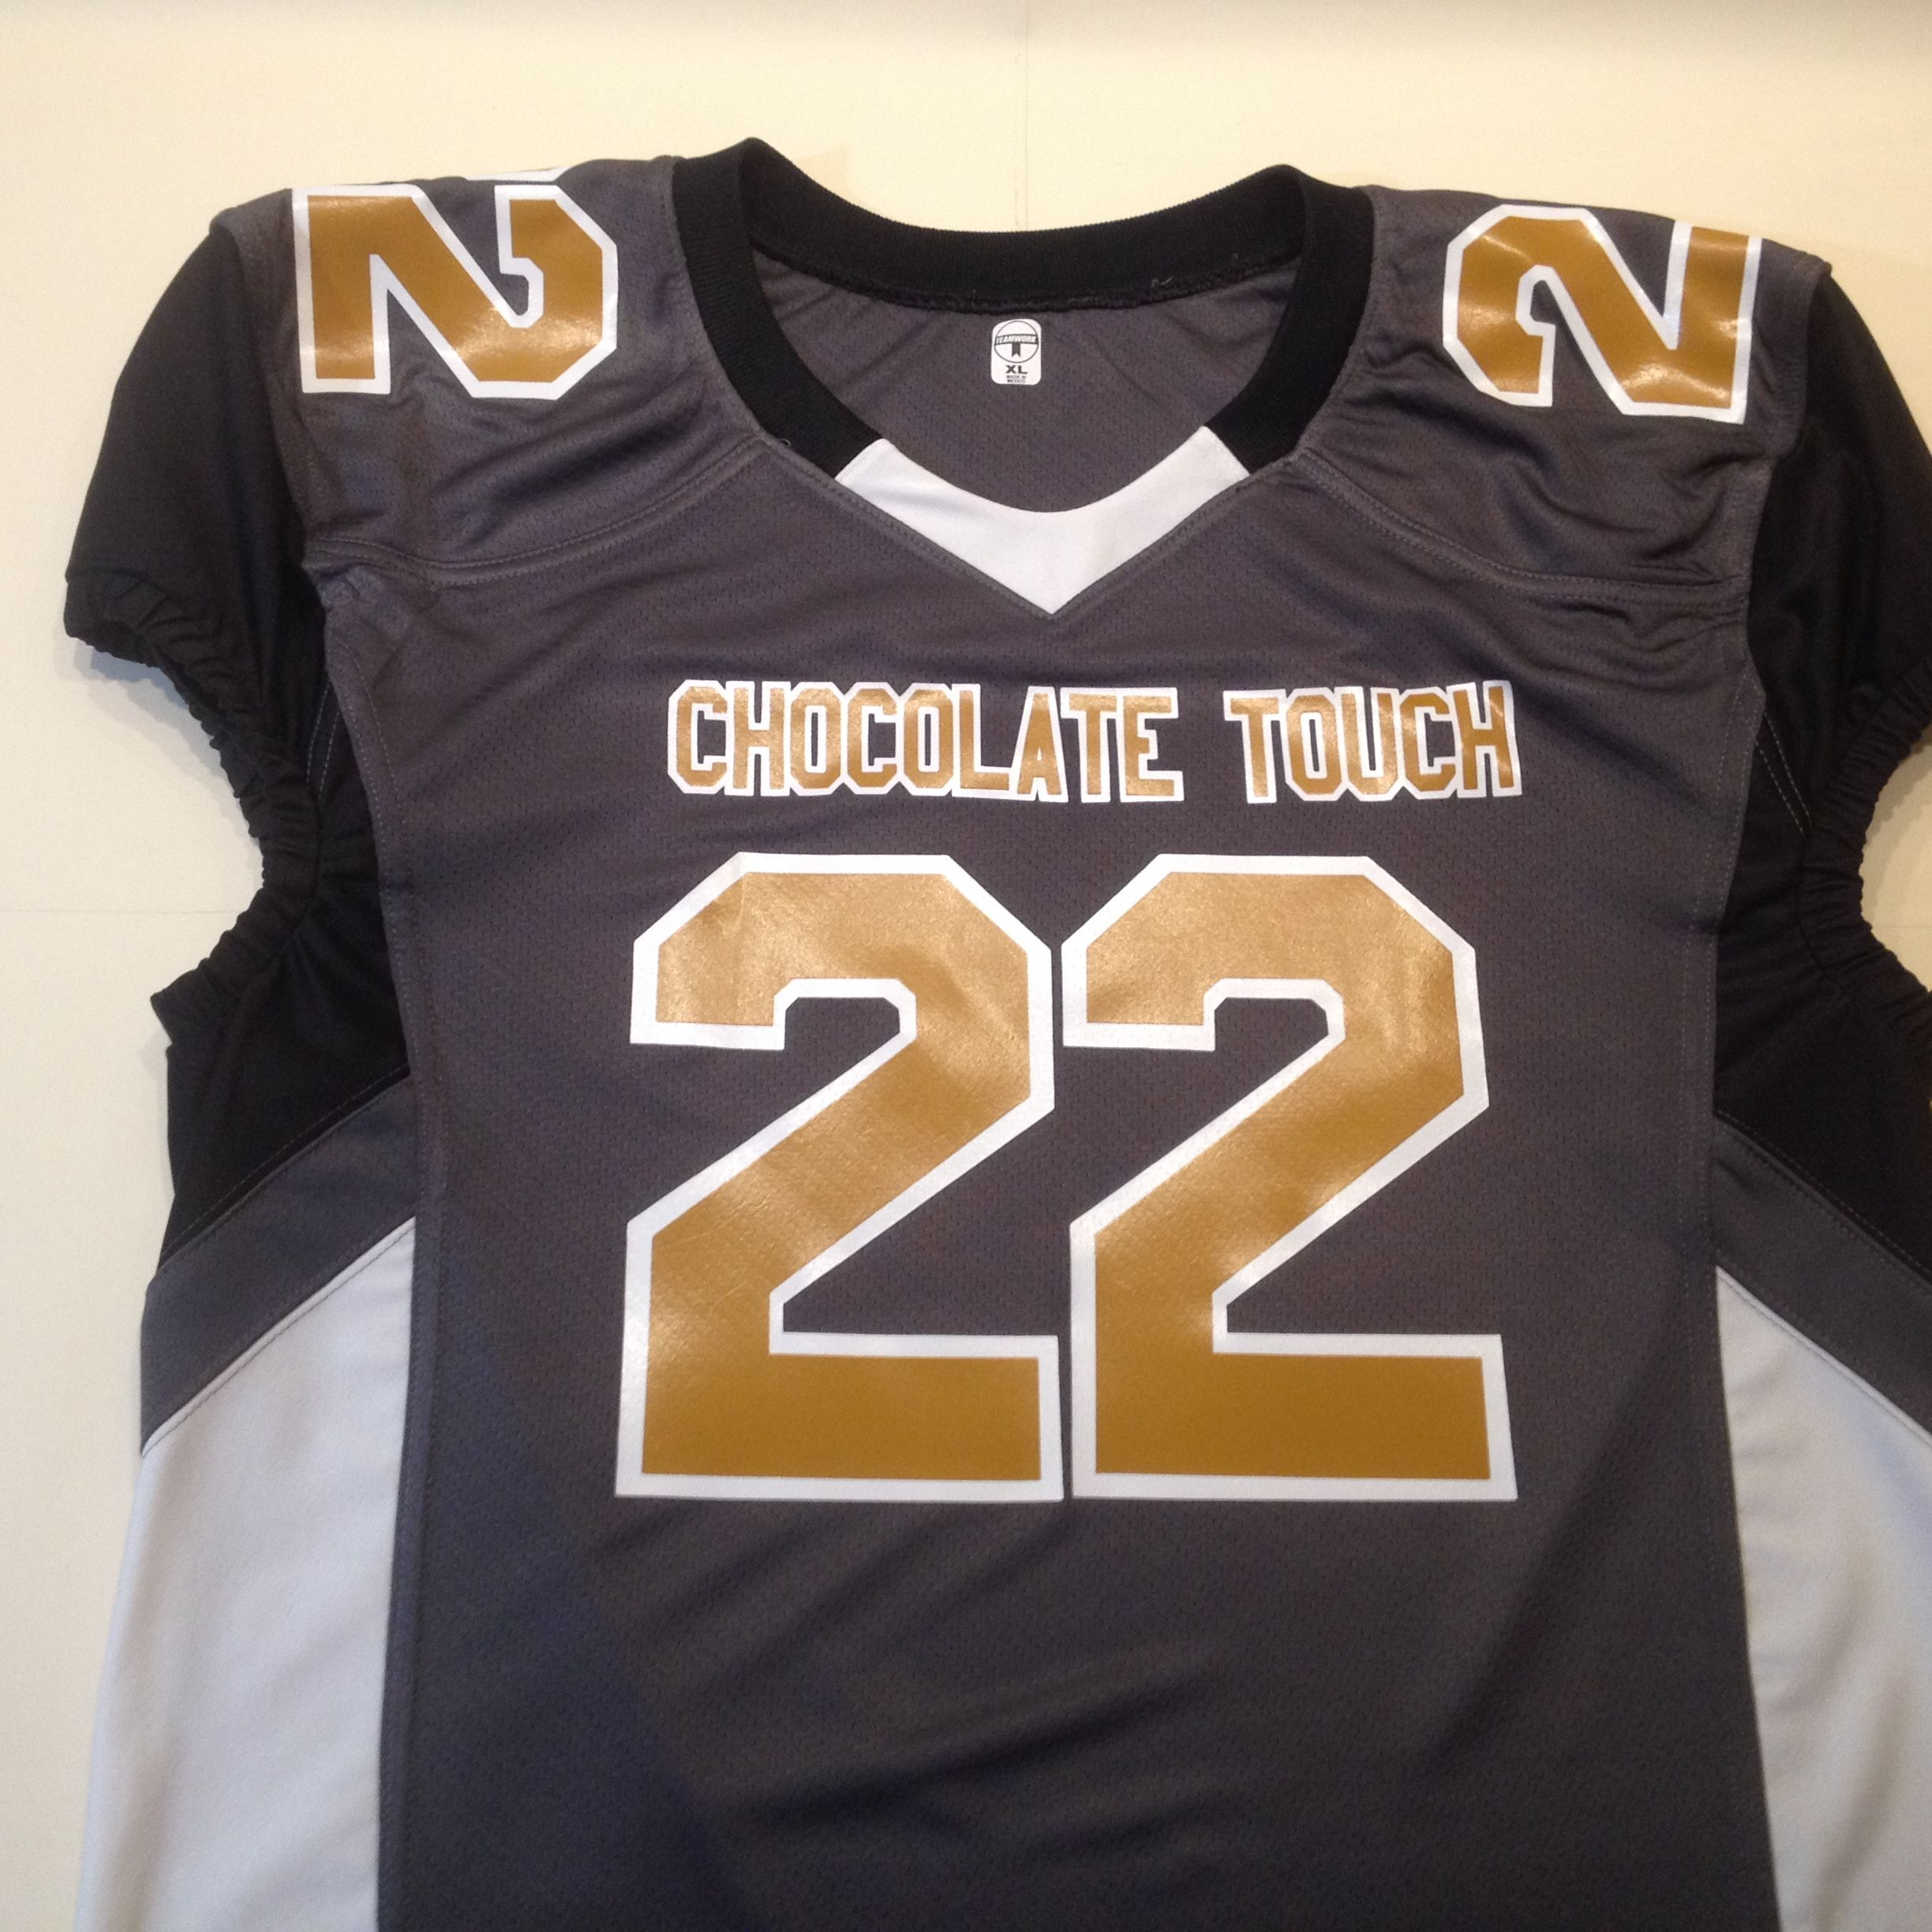 1c471945c Have fun coming up with your team name and color scheme for your   fantasyfootball  jersey. This Chocolate Touch jersey uses Old  Missouri  gold on a graphite ...